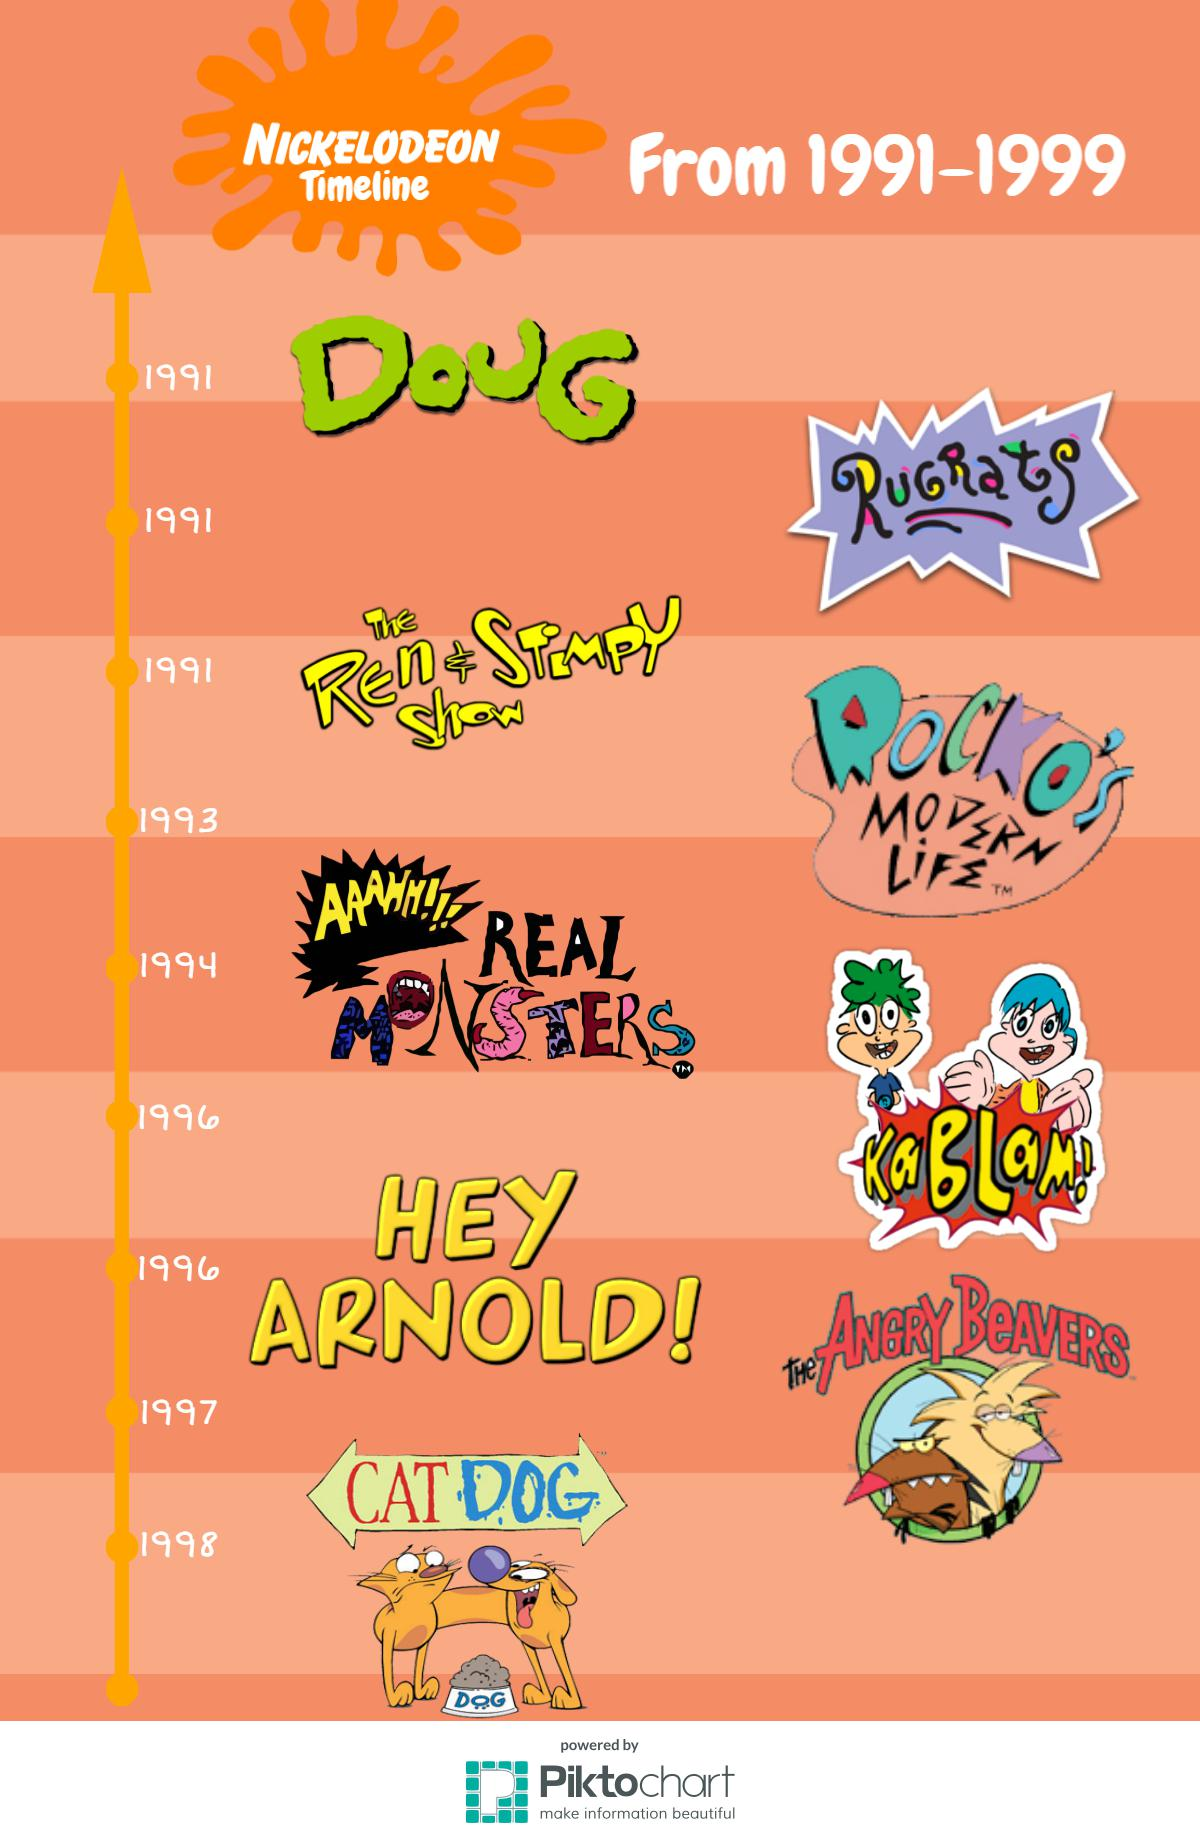 a-timeline-about-classic-nickelodeon-cartoons